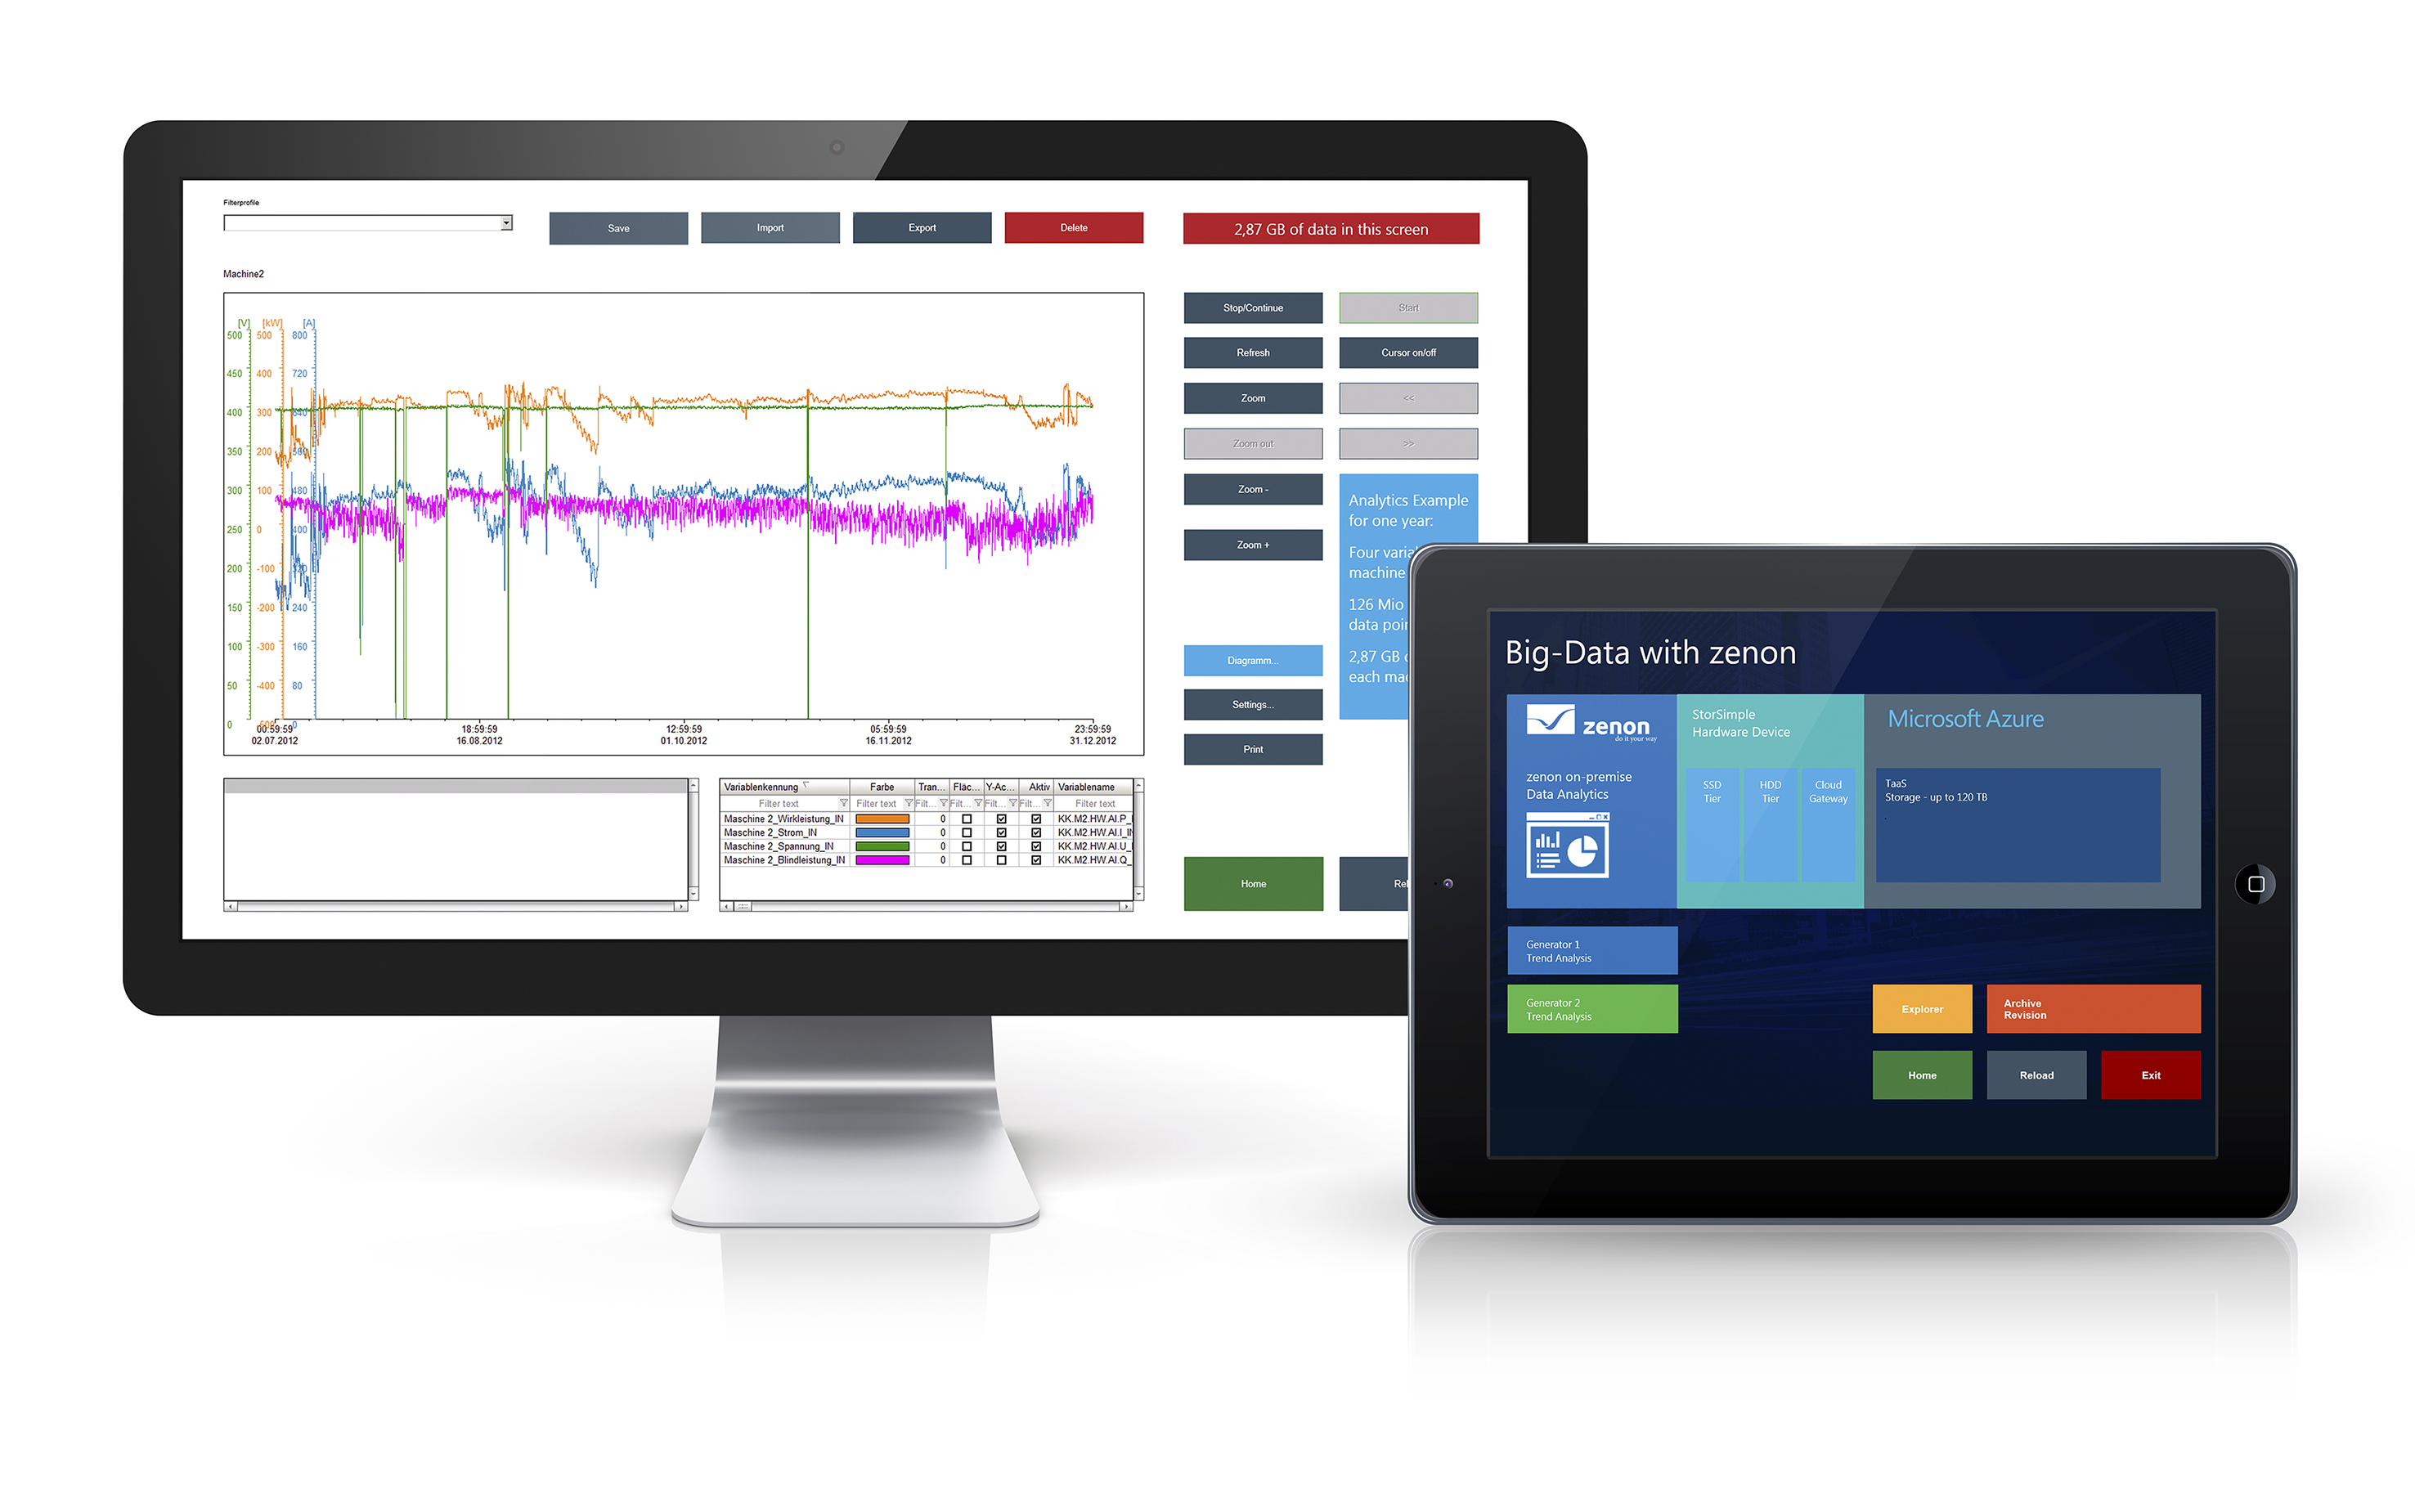 Copa-Data to showcase software for smarter grids at Cigre